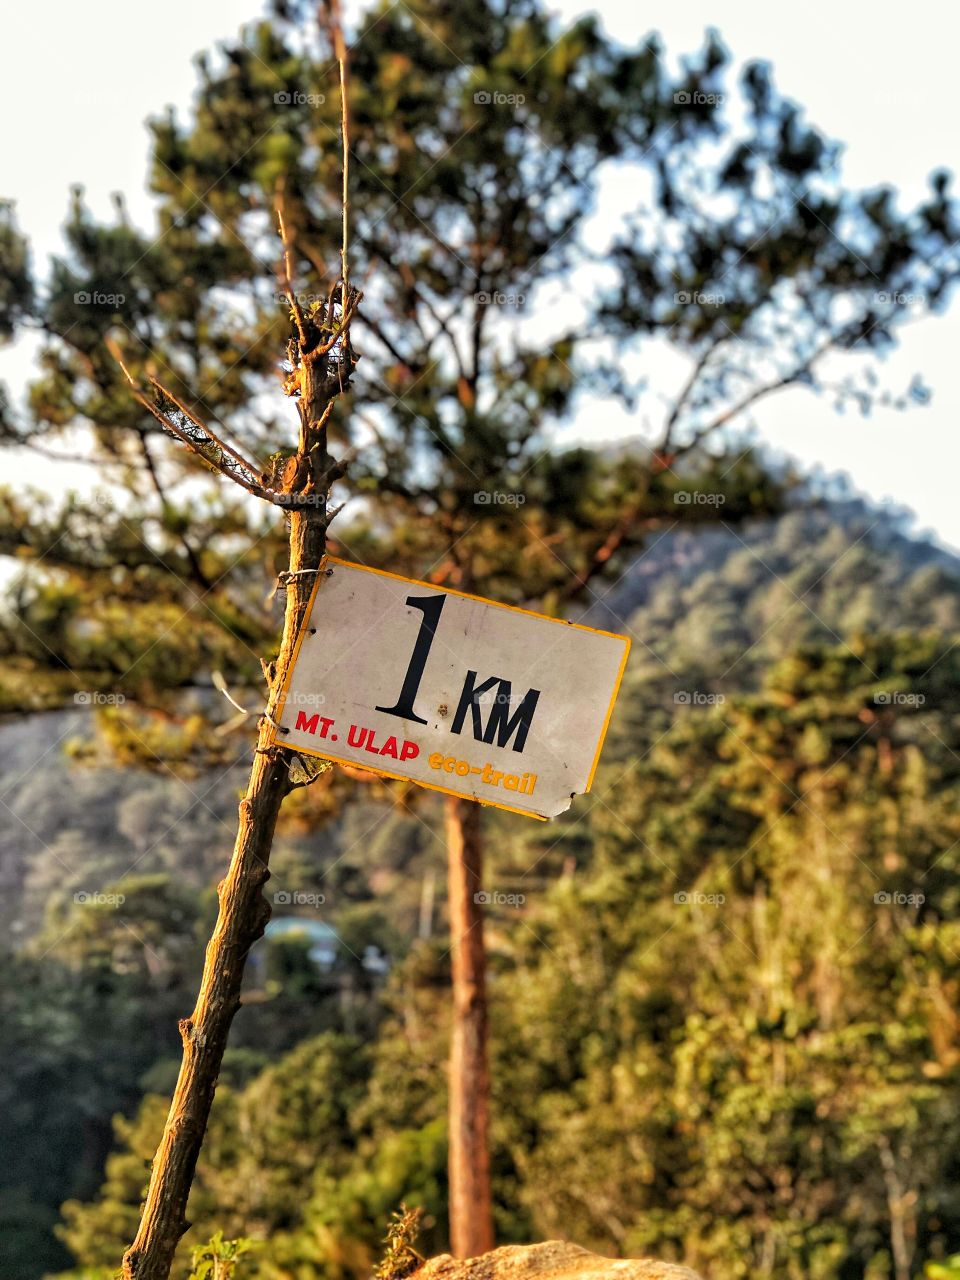 Let's start the climb! 1KM of 9.1KM from the starting trail. Ofcourse I can finish the clim! 💪🏃🚵⛰️🏞️